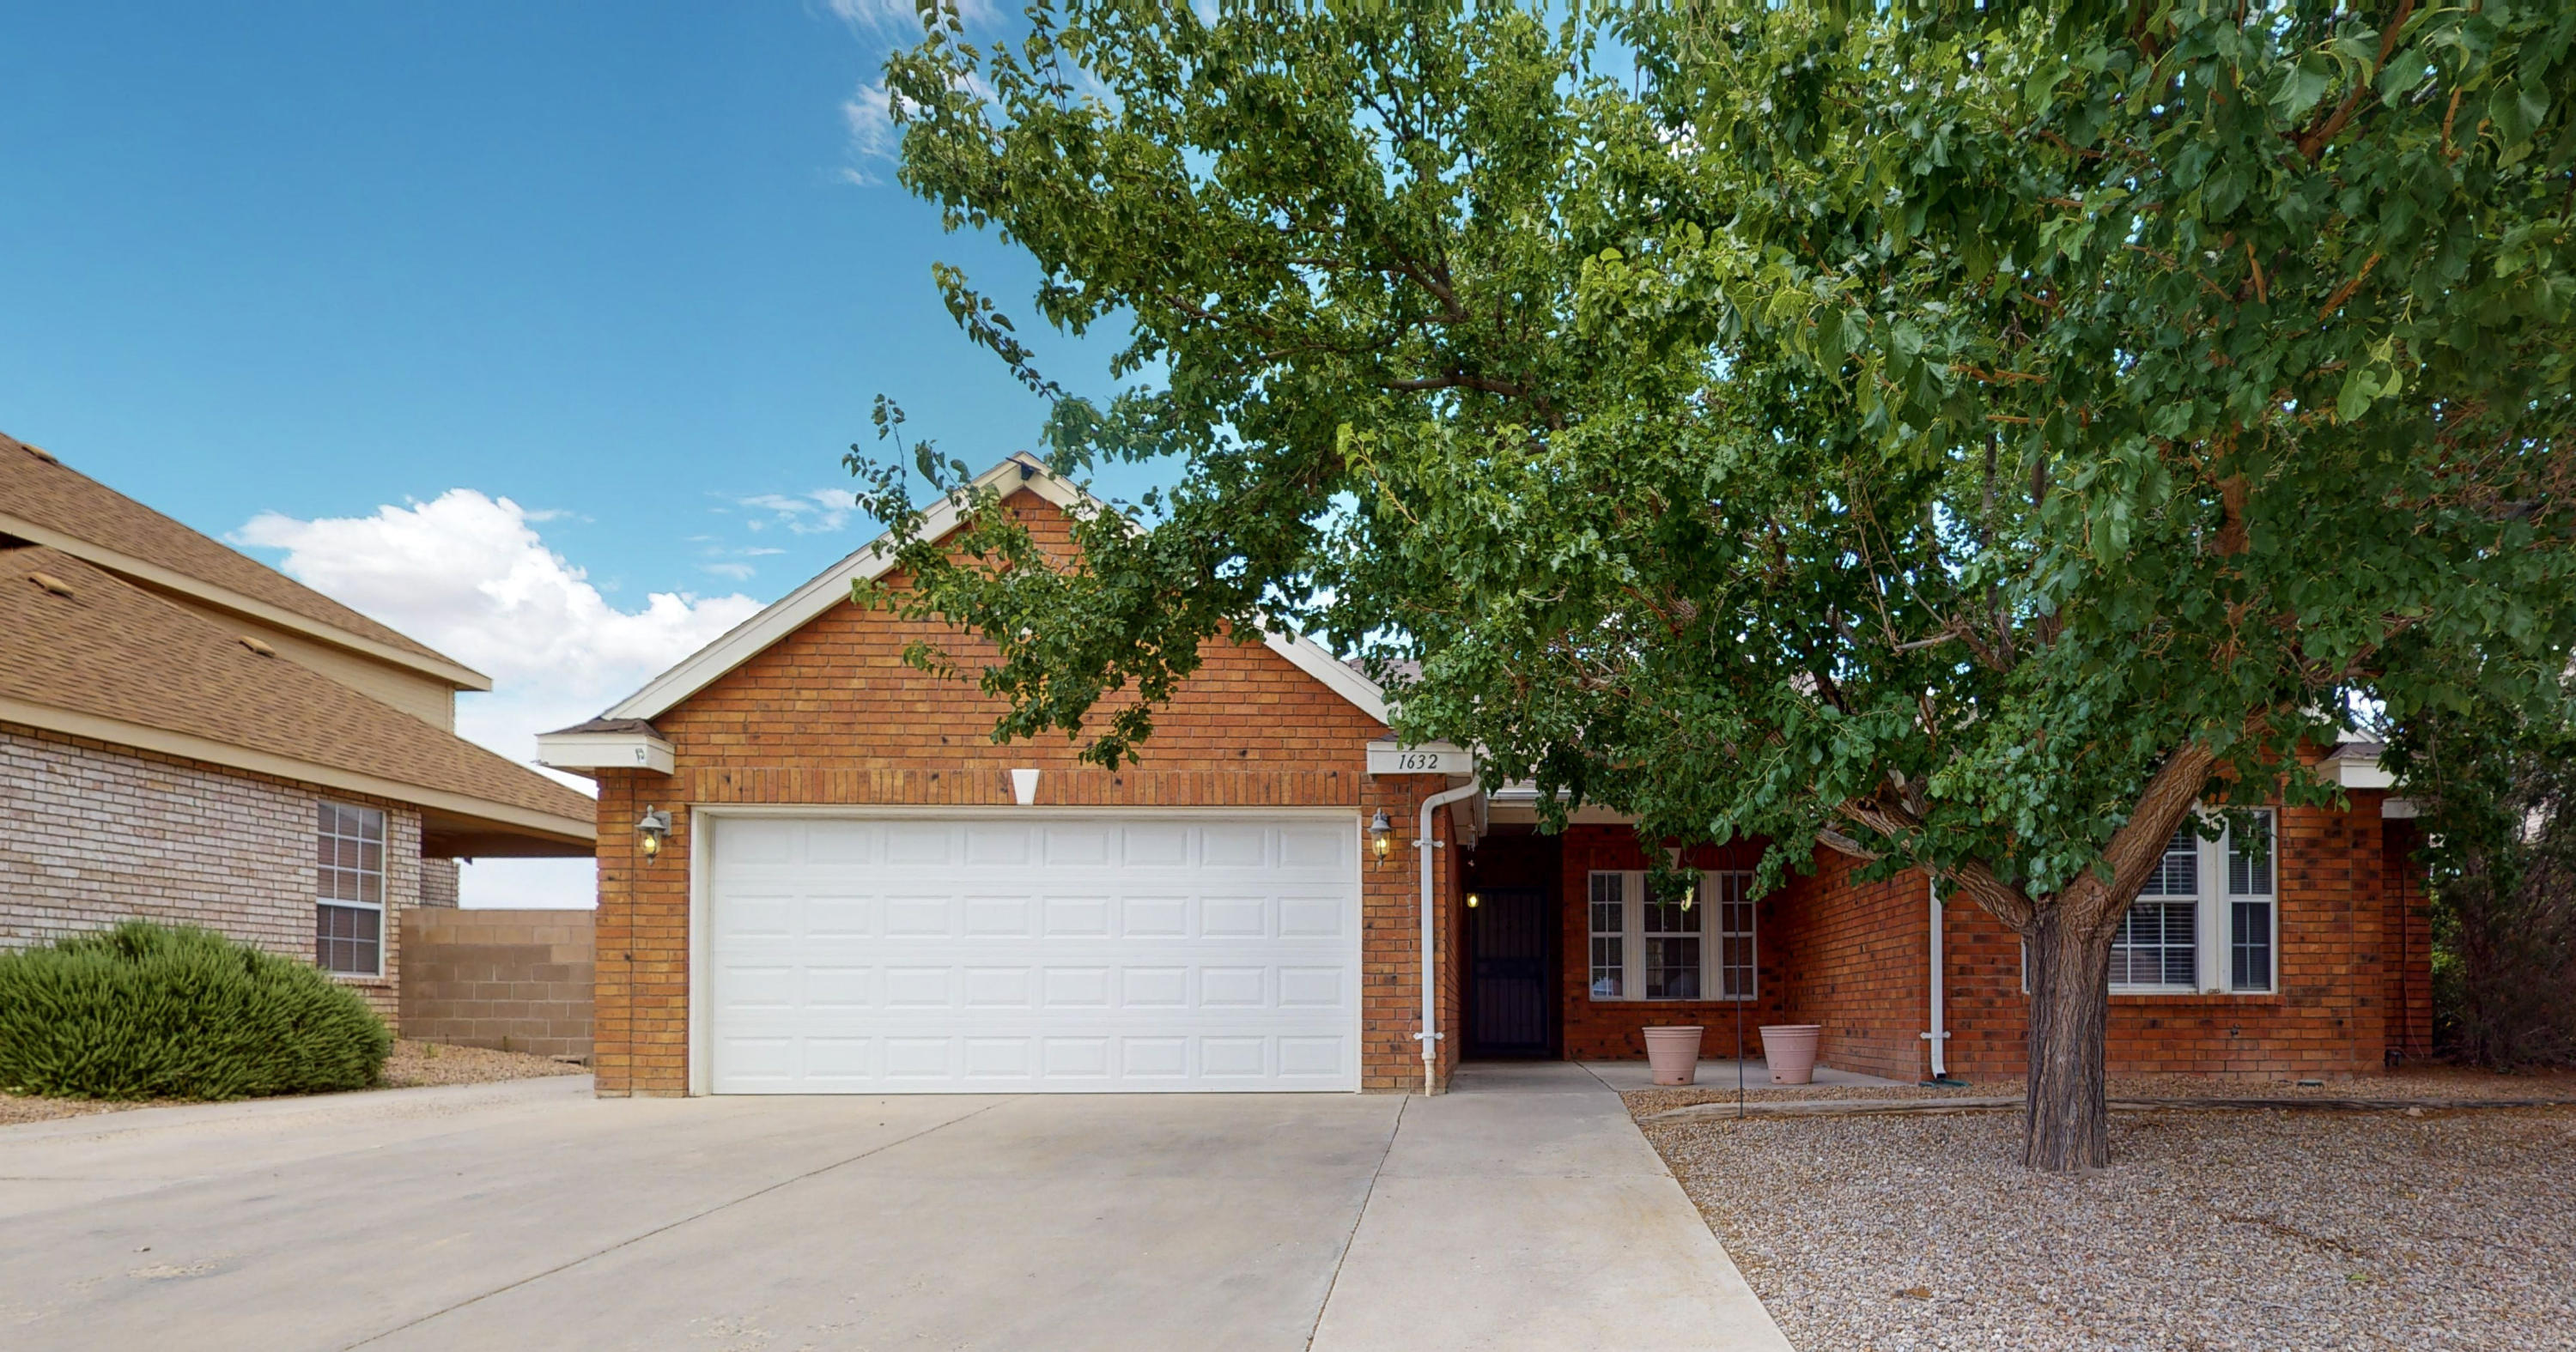 Beautiful brick Sivage Thomas home built in a location that's hard to beat in this premier location of Los Lunas! Walking through the door you will feel the warmth and welcoming open living area and kitchen that will make it easy to envision festivities with family or quiet days of solitude. Inside home provides ideal comfort with a recently installed water heater, cooling and heating system and the backyard gives tremendous openness perfect for any occasion. At this price with this beauty, this home will not last.